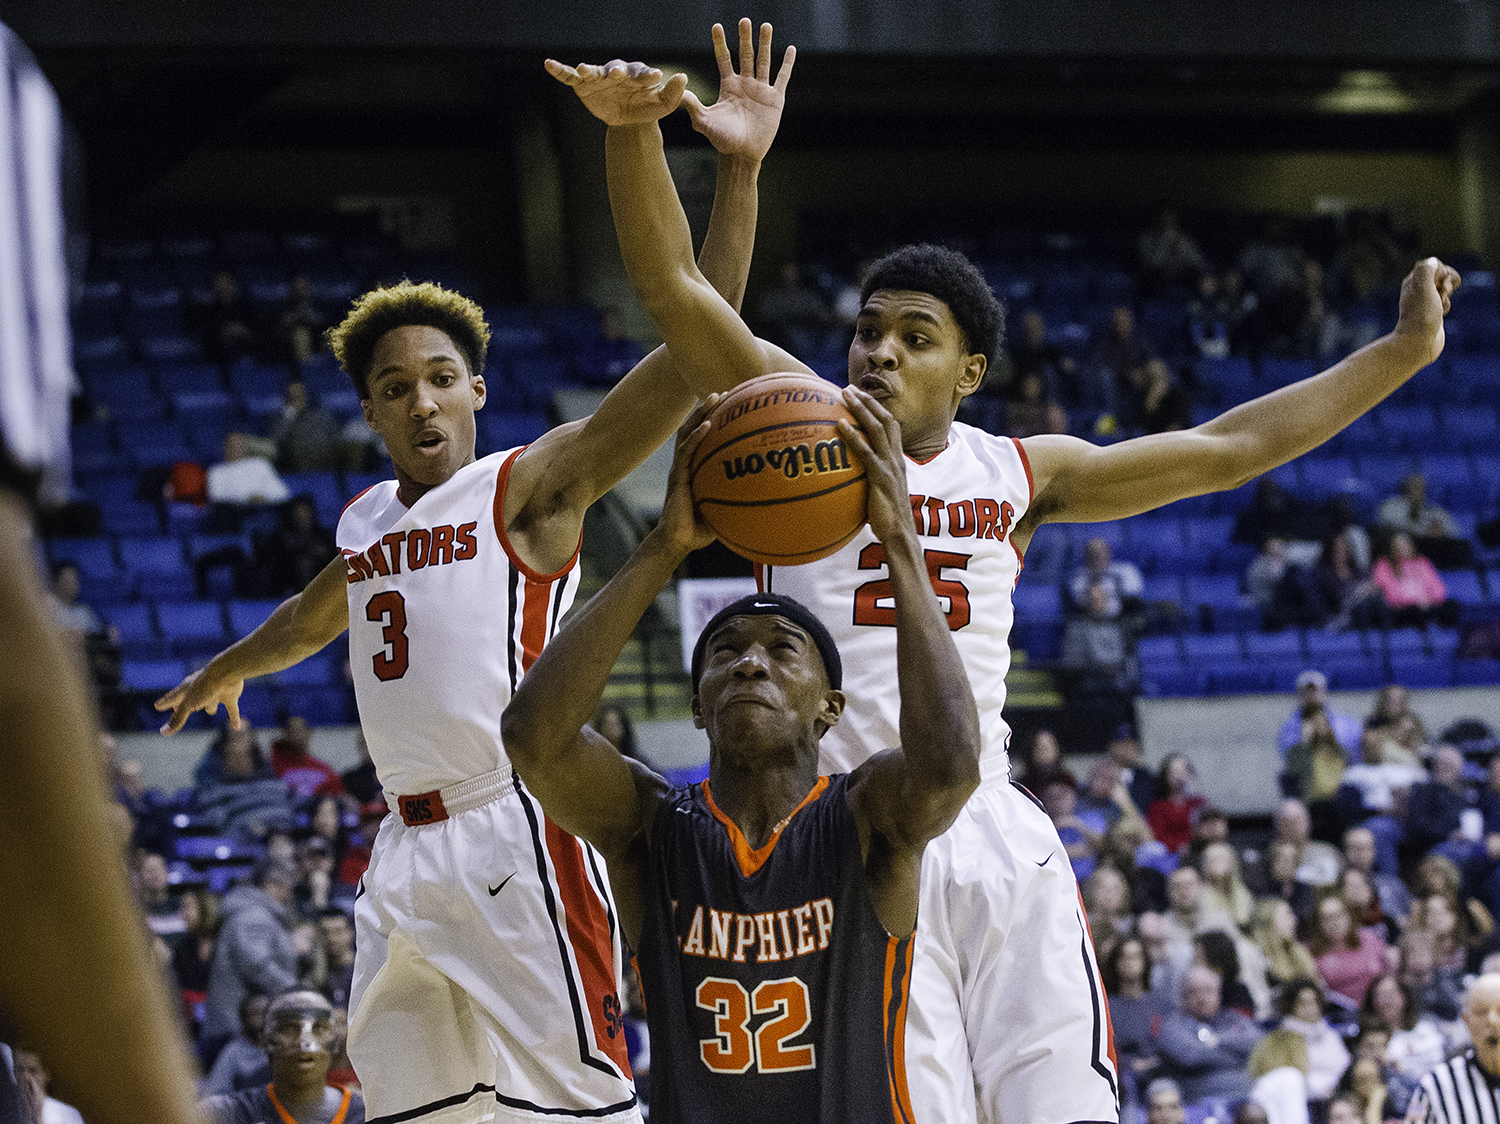 Springfield's Robert Williams, left, and Josh Washington pressure Lanphier's Karl Wright as he drives to the hoop during the Boys City Tournament at the Bank of Springfield Center Thursday, Jan. 18, 2018. [Ted Schurter/The State Journal-Register]